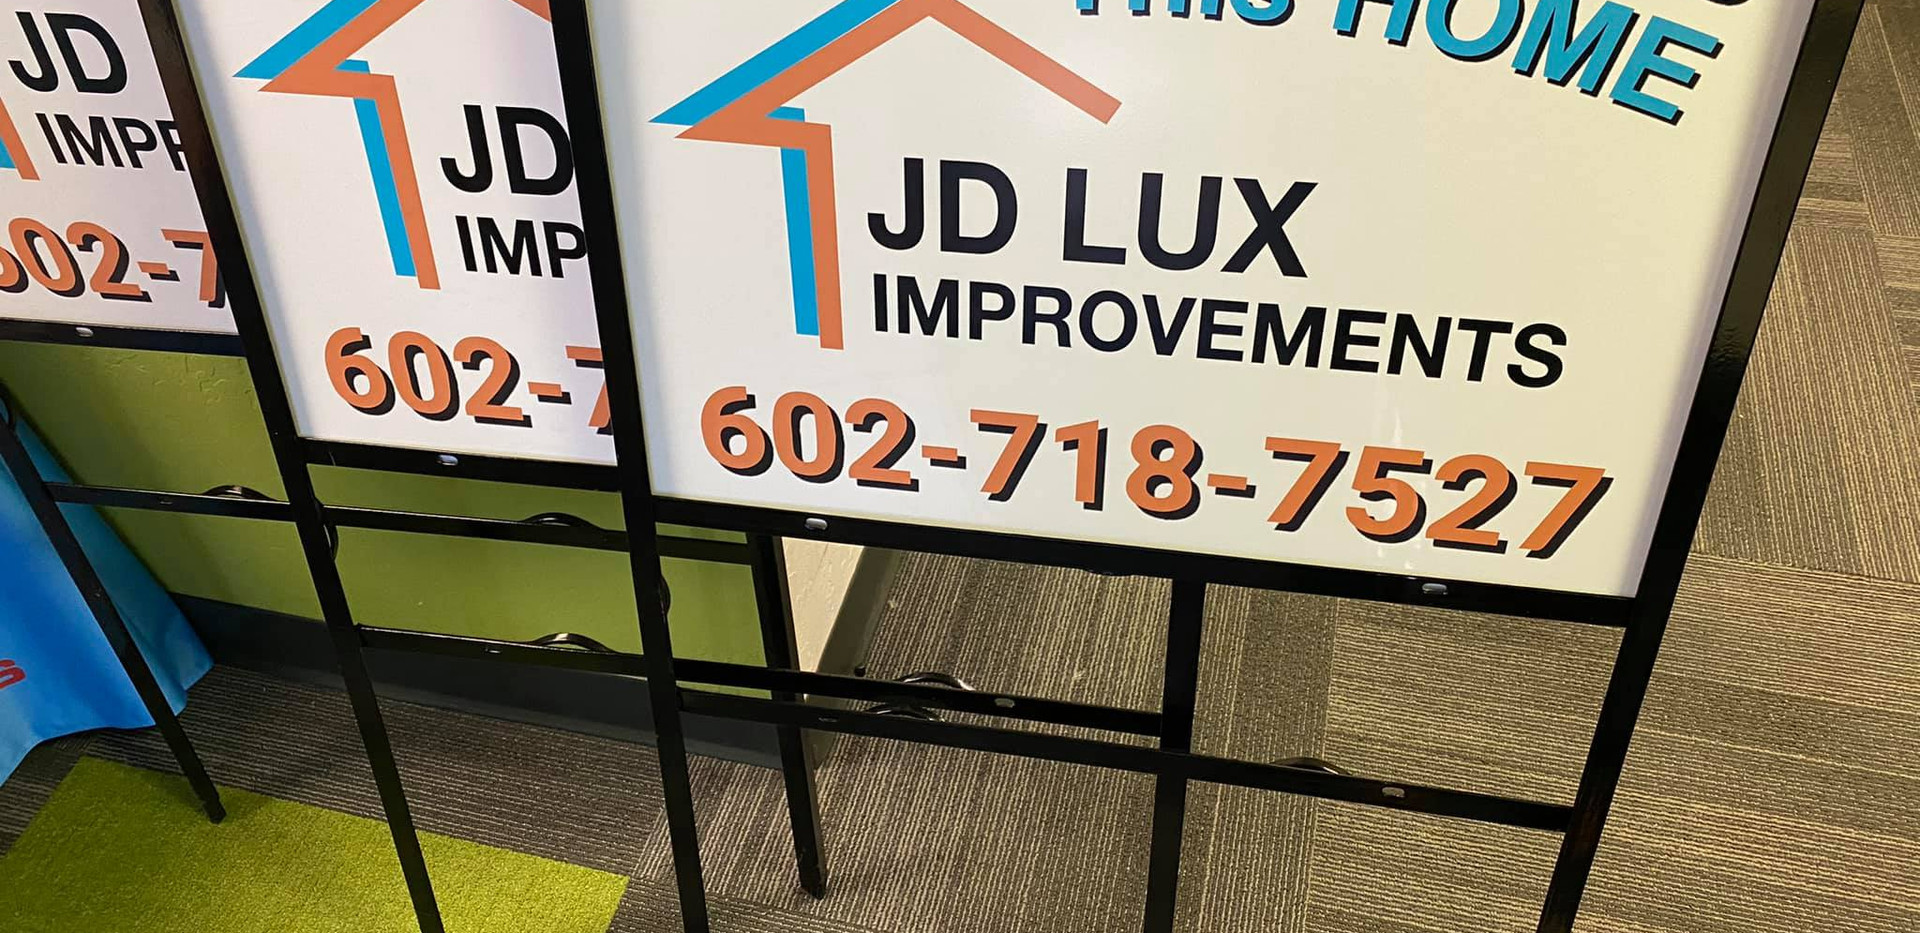 AZGP Metal Sign JD Lux.jpg